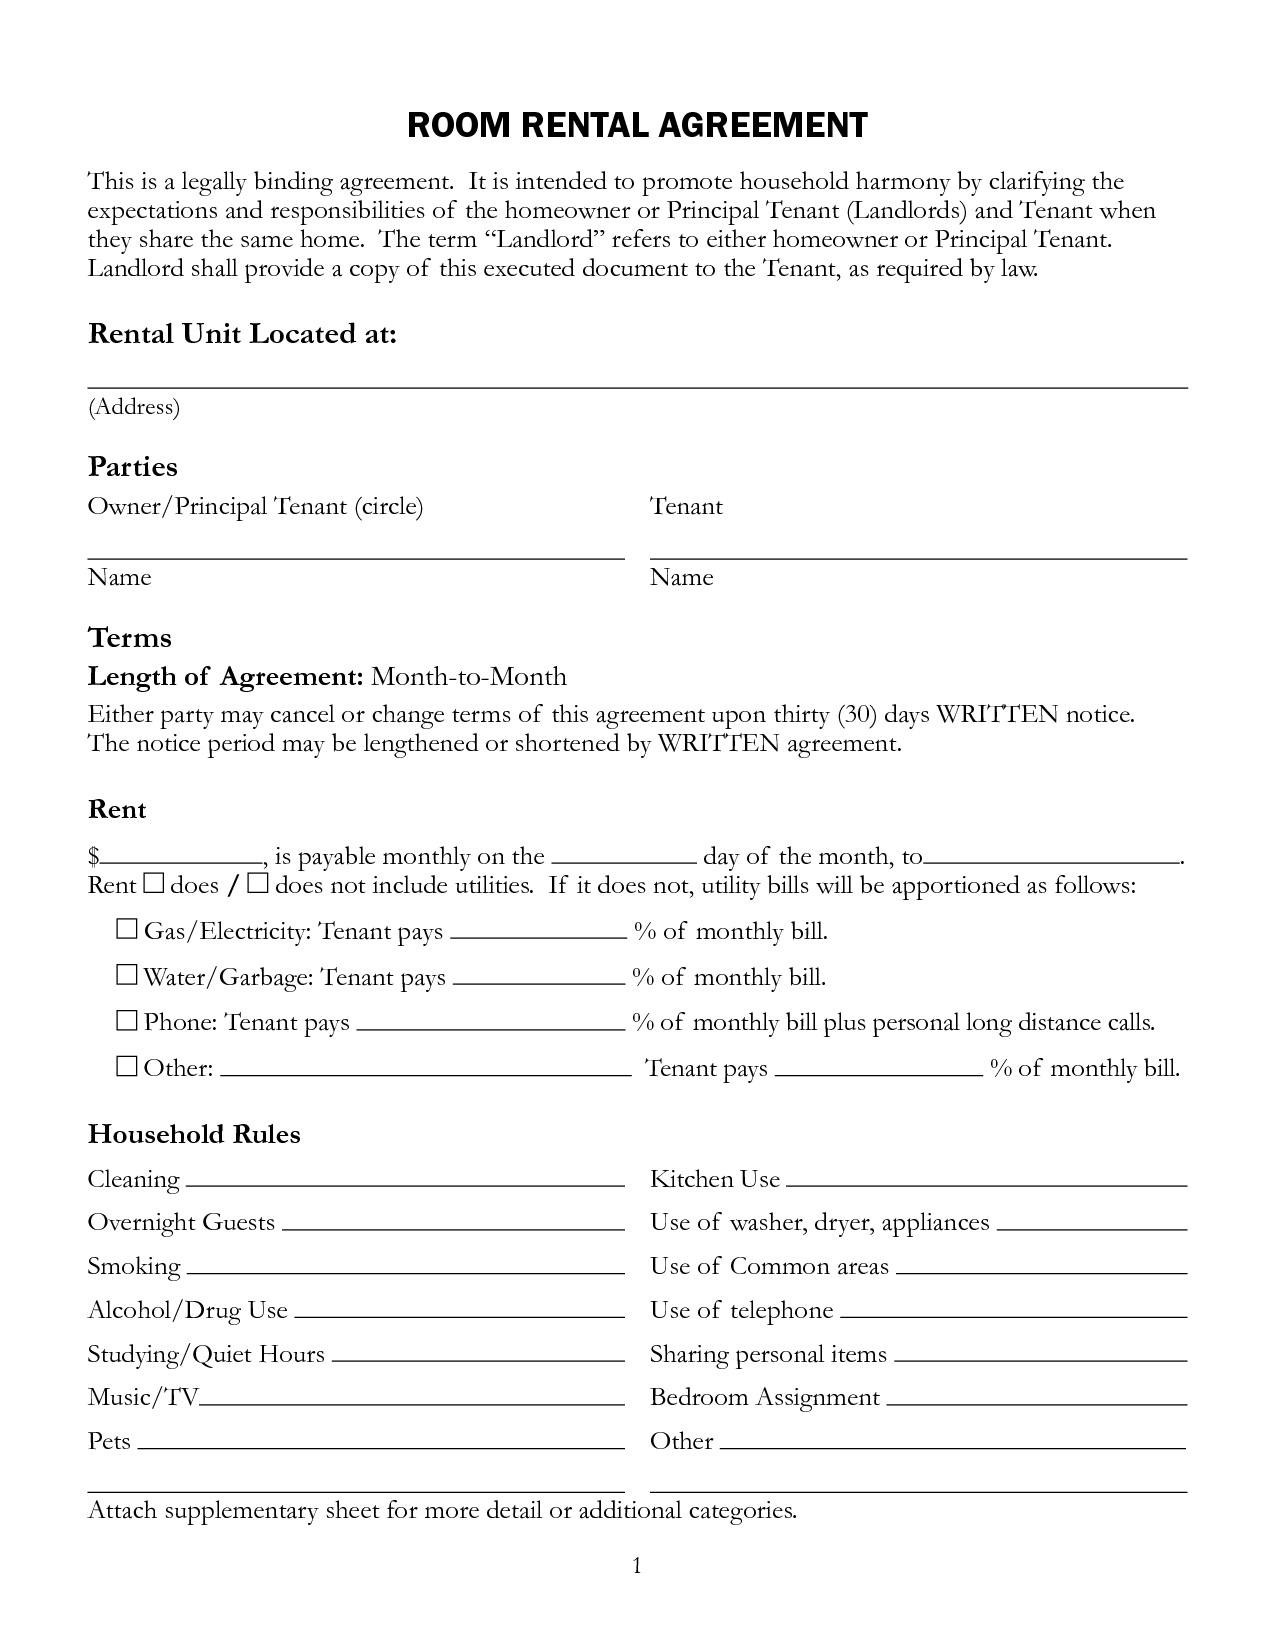 Sublet Rental Agreement Form